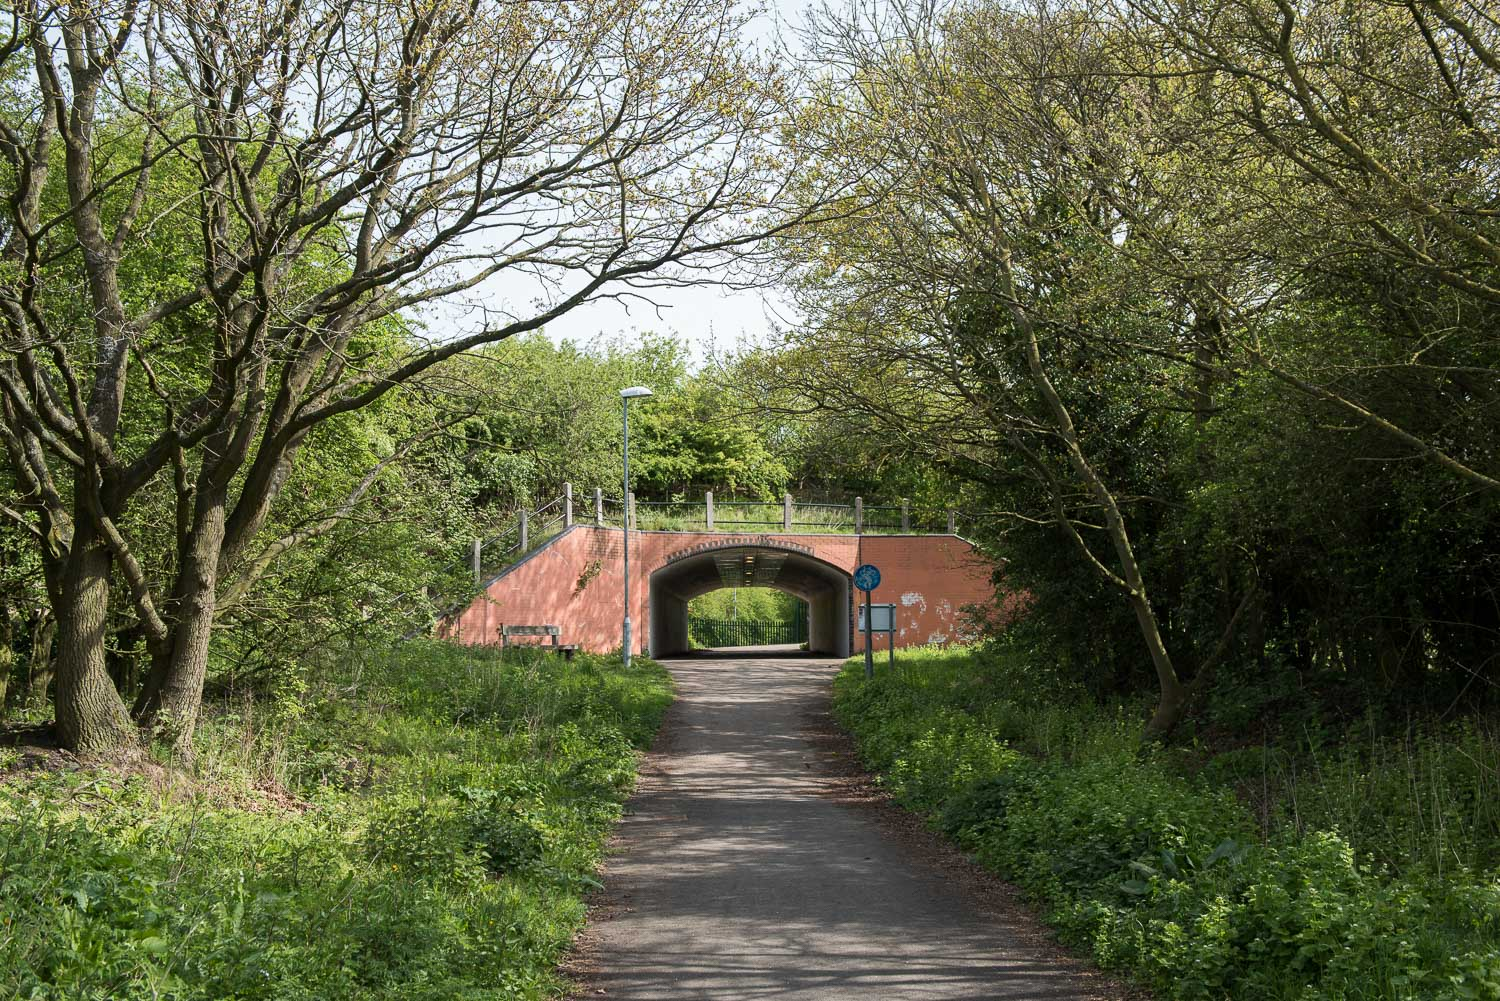 Watling Street Cycle Underpass, Route 52, A5, Warwickshire - April 2015